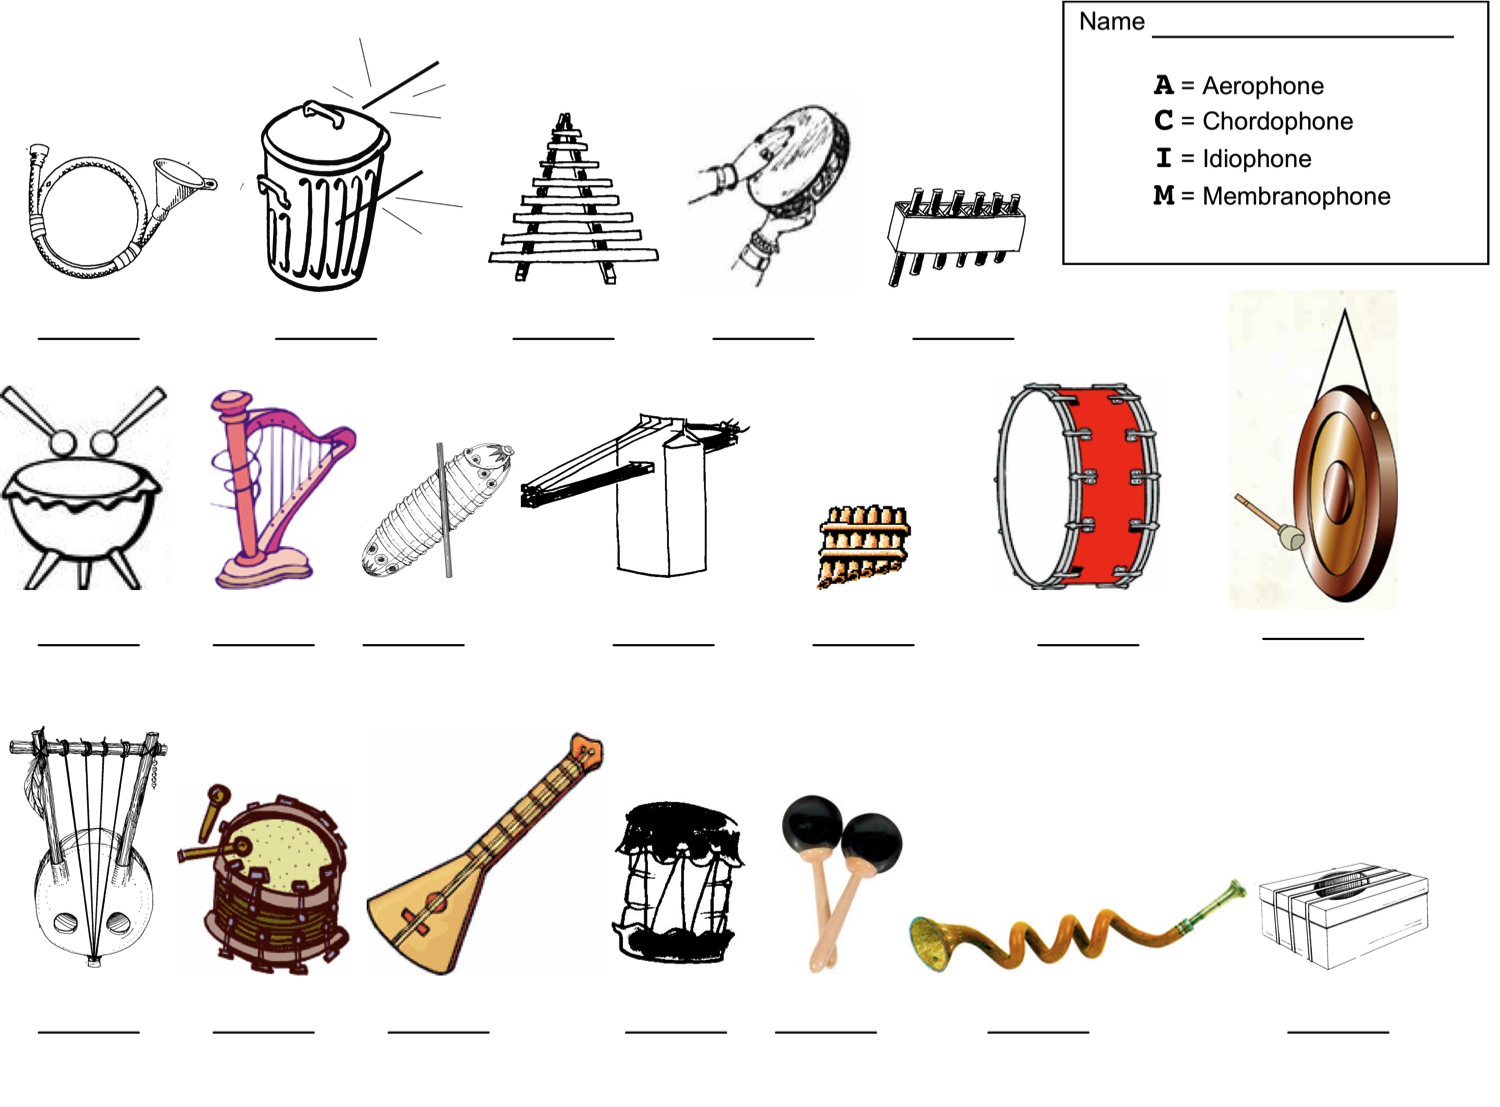 hight resolution of Orchestra Instrument Worksheet   Printable Worksheets and Activities for  Teachers